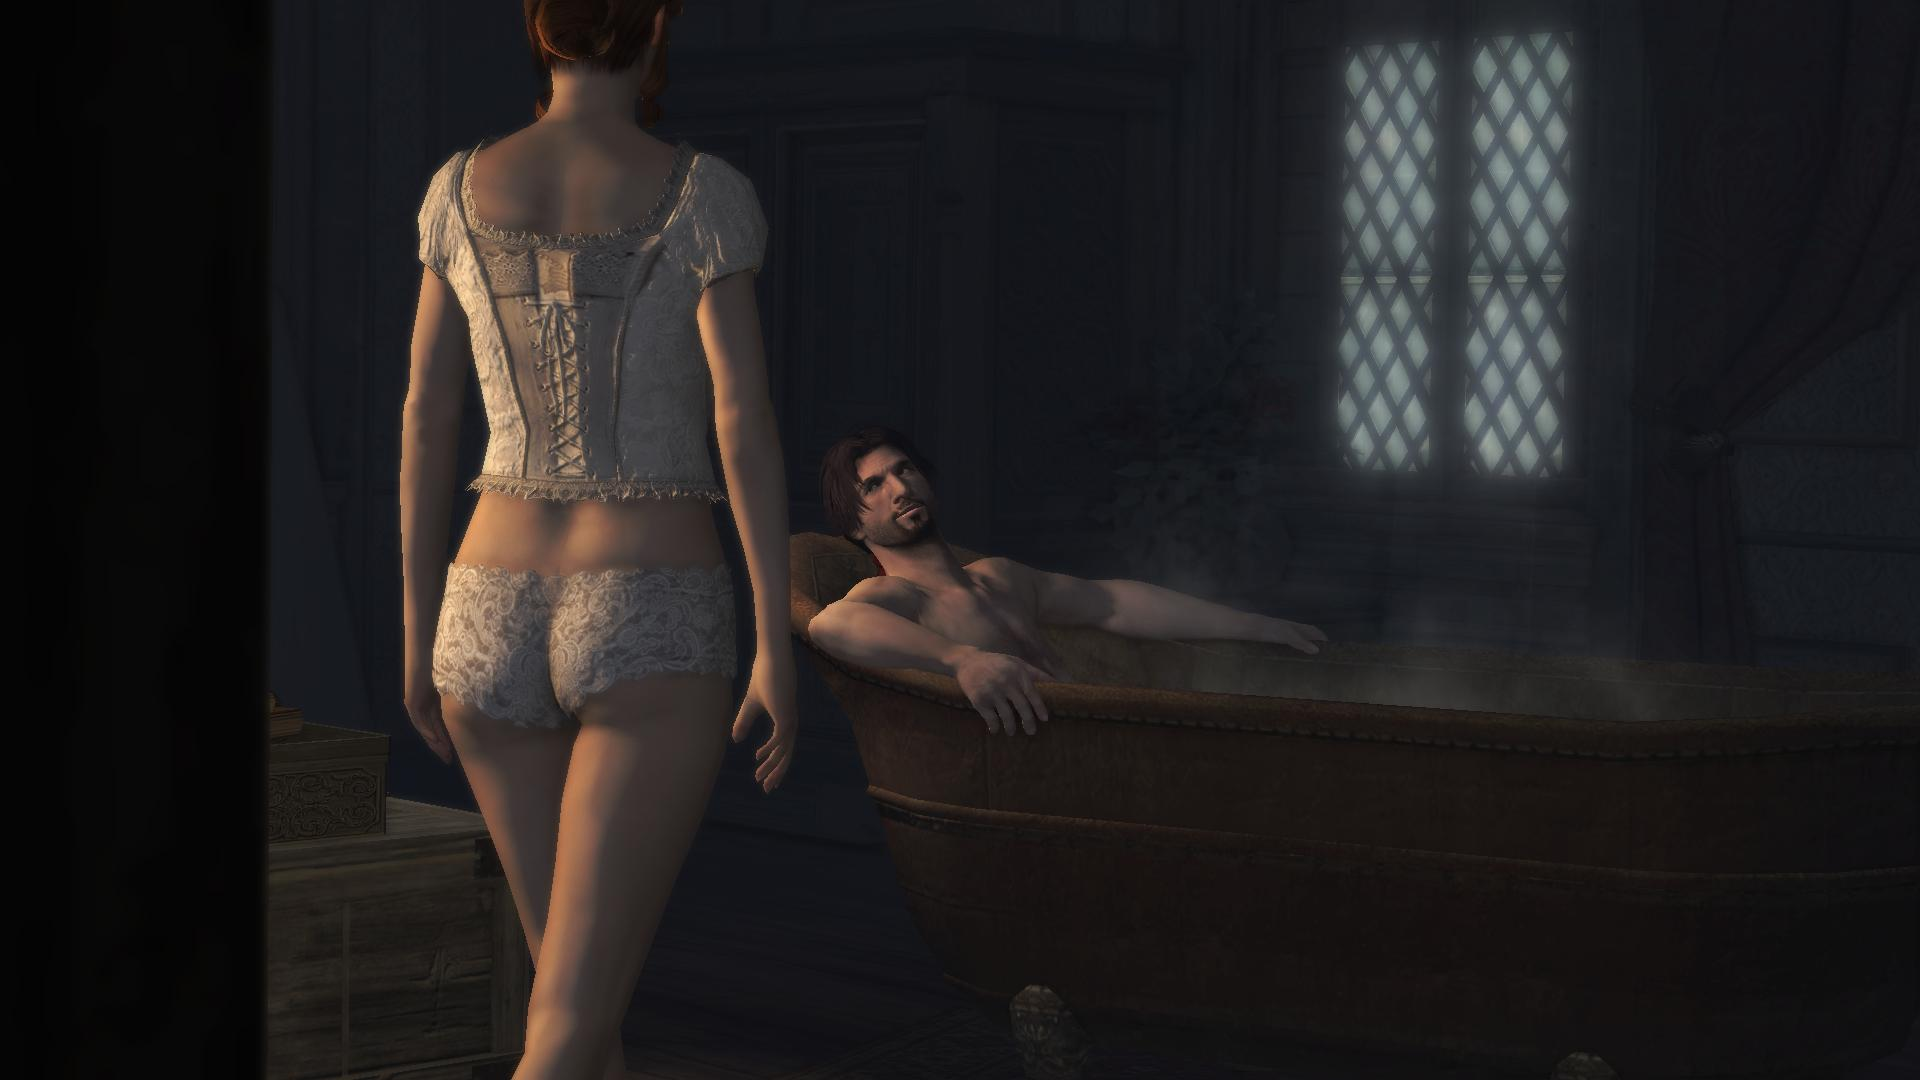 Assassin s creed brotherhood girl naked sex pic